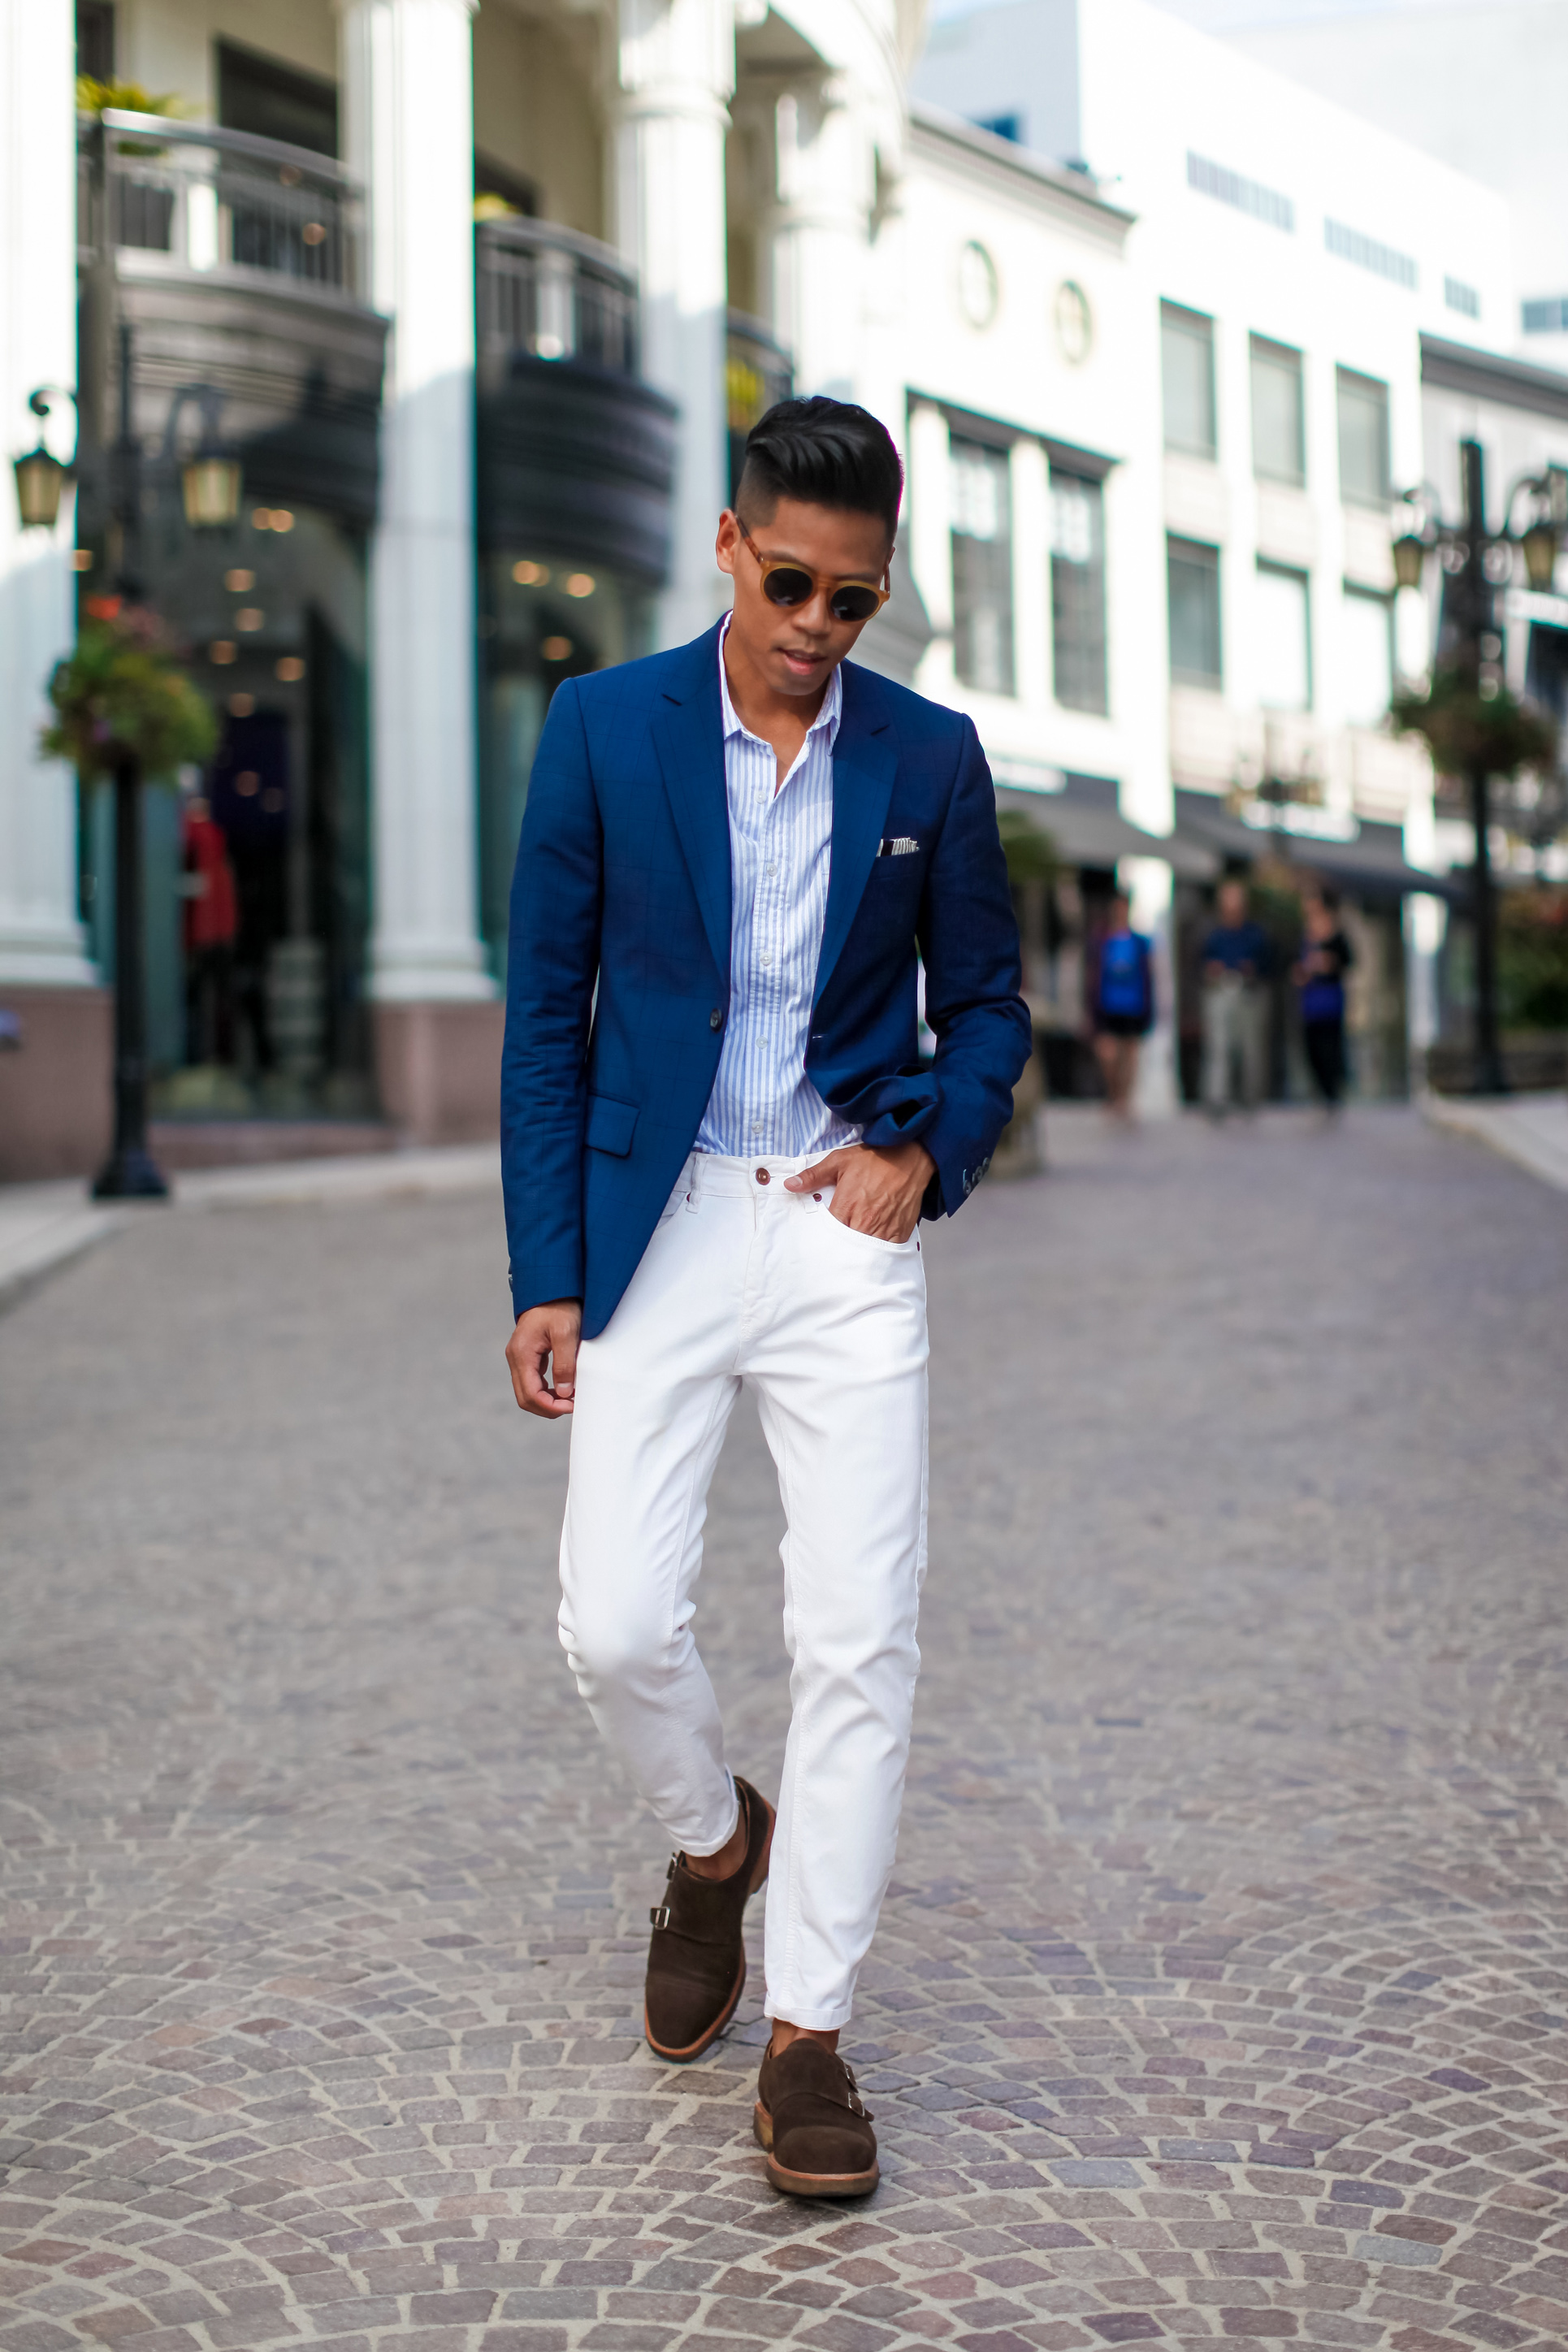 What to wear with blue blazer and jeans